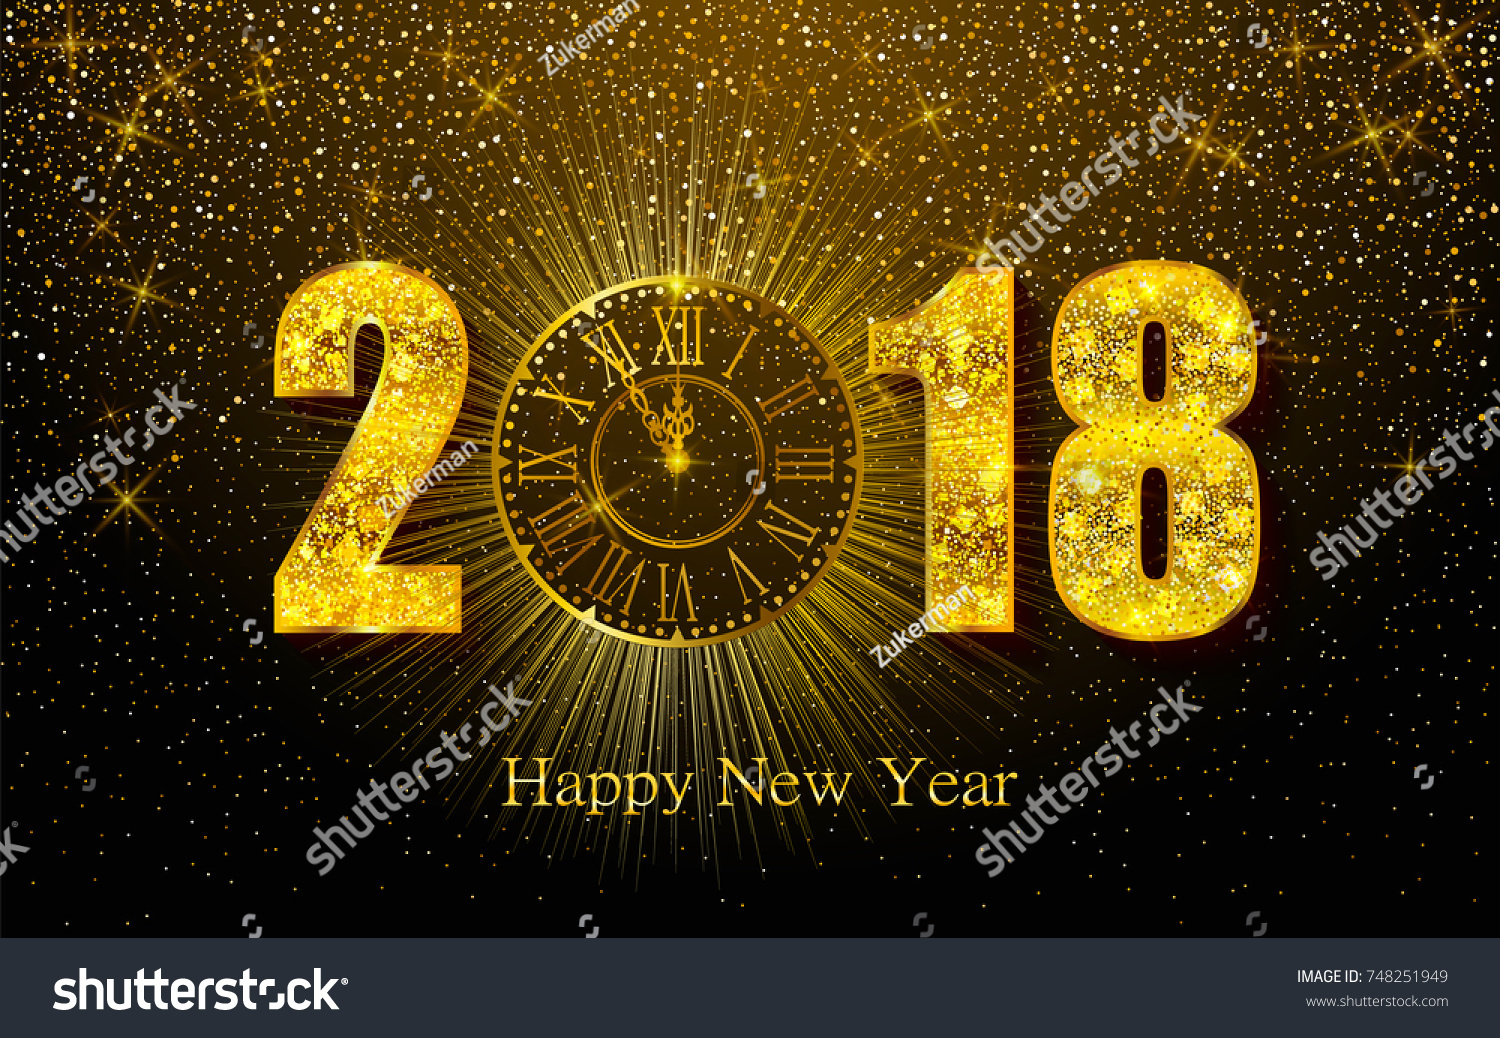 happy new year 2018 background with golden sparkling texture gold numbers 1 2